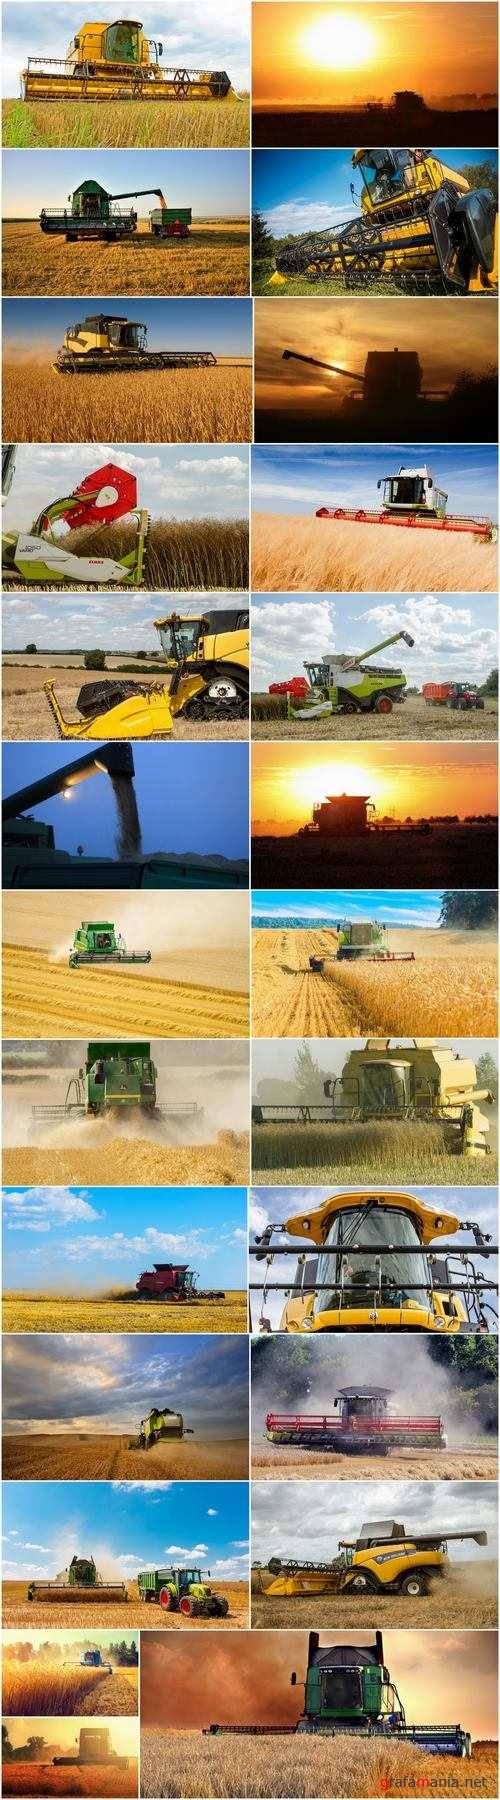 Combine tractor harvesting field of agricultural crop harvester 25 HQ Jpeg